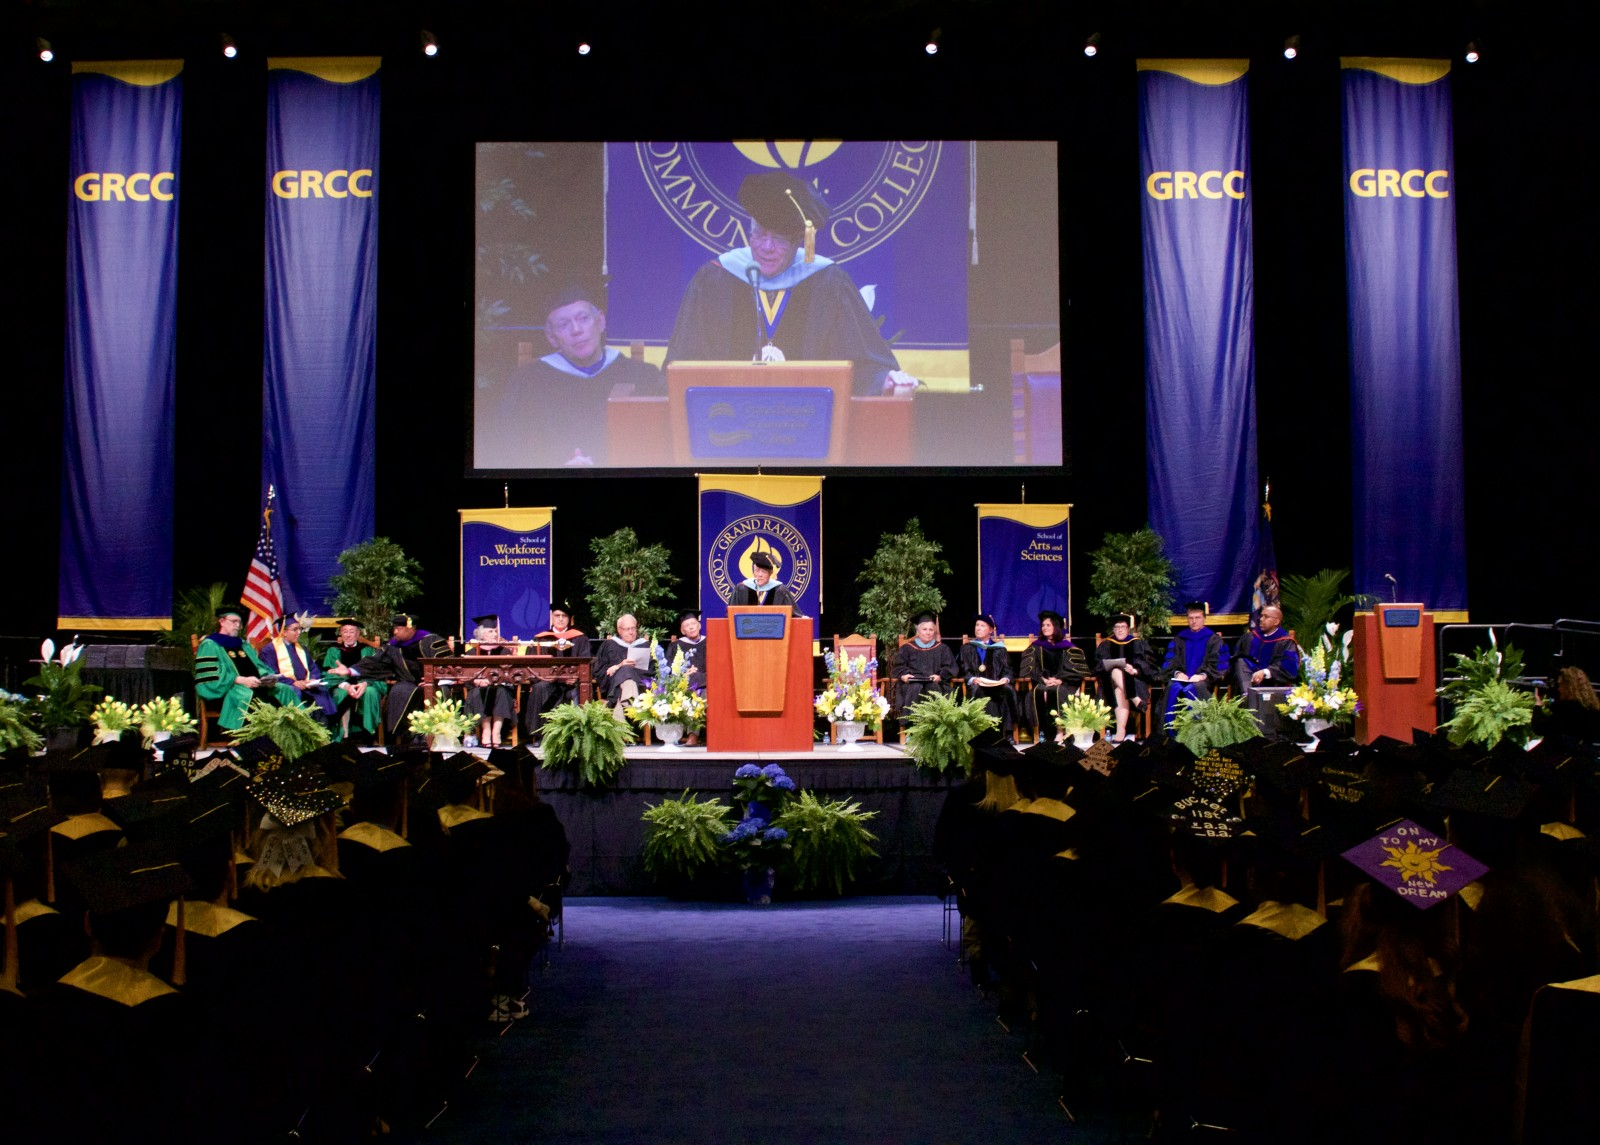 Grcc Hosts 100th Commencement Ceremony The Collegiate Live